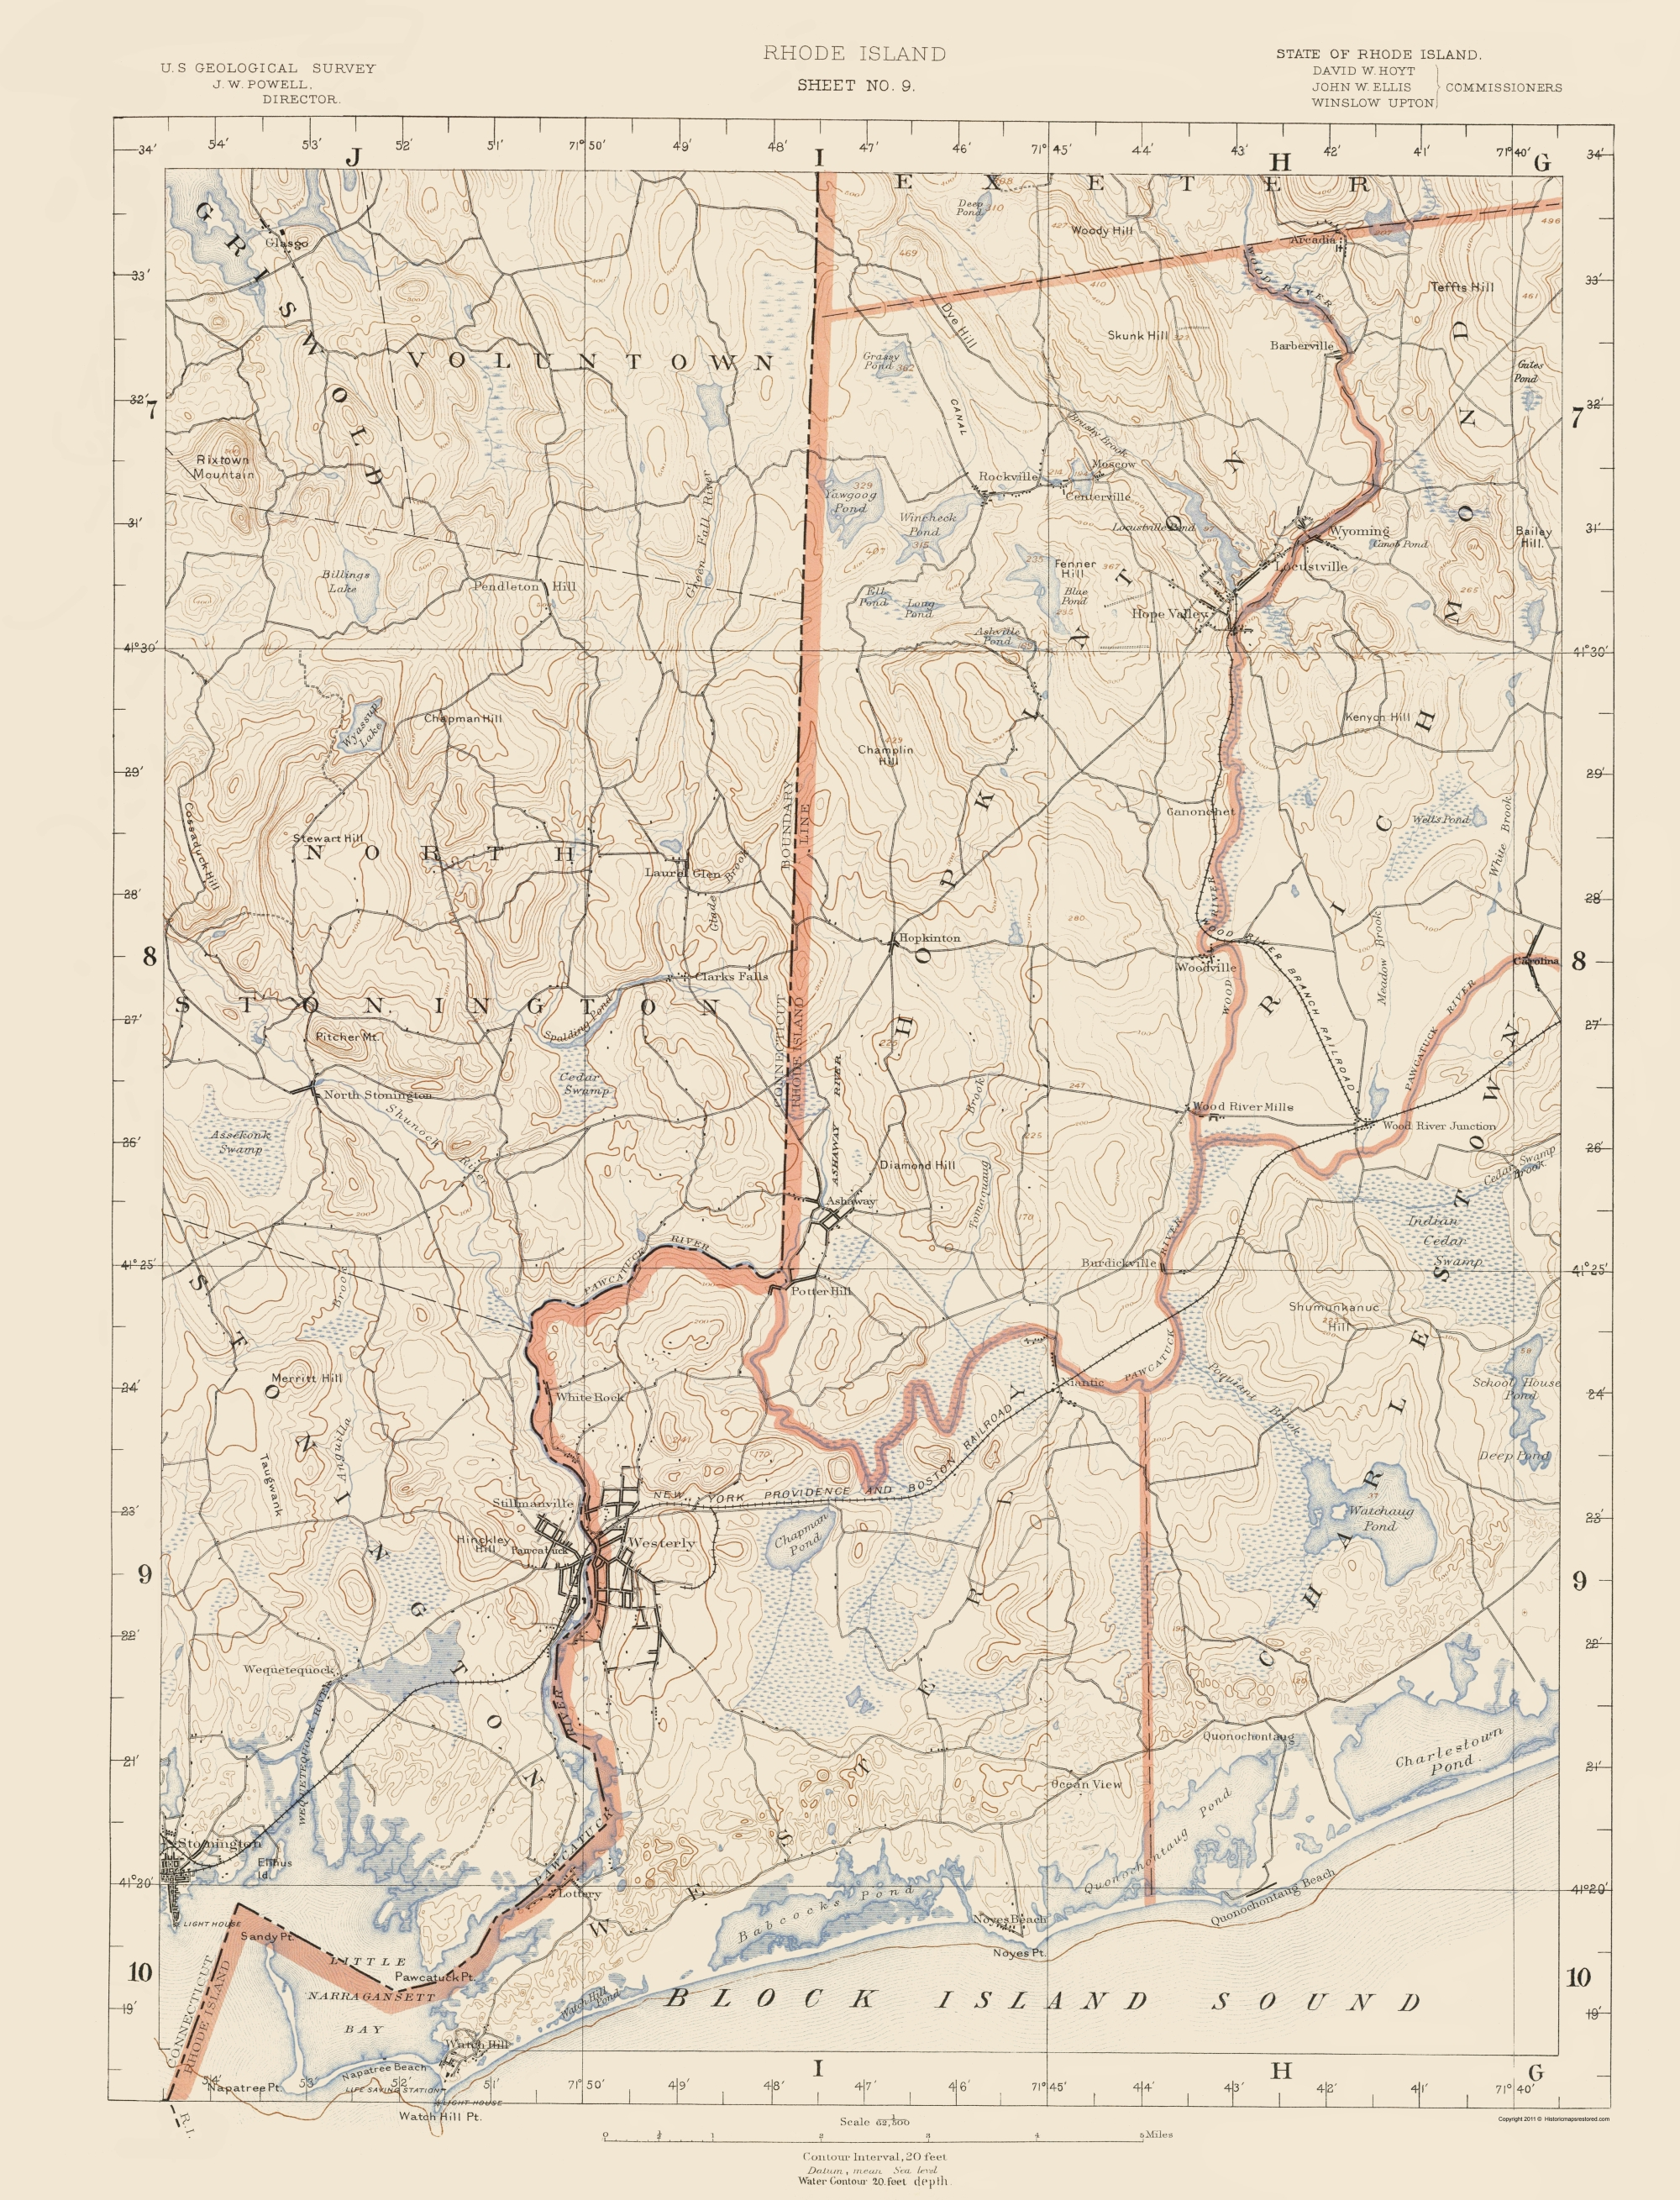 Topographic Map Rhode Island.Topographical Map Rhode Island 9 Of 10 Sheet Usgs 1891 23 X